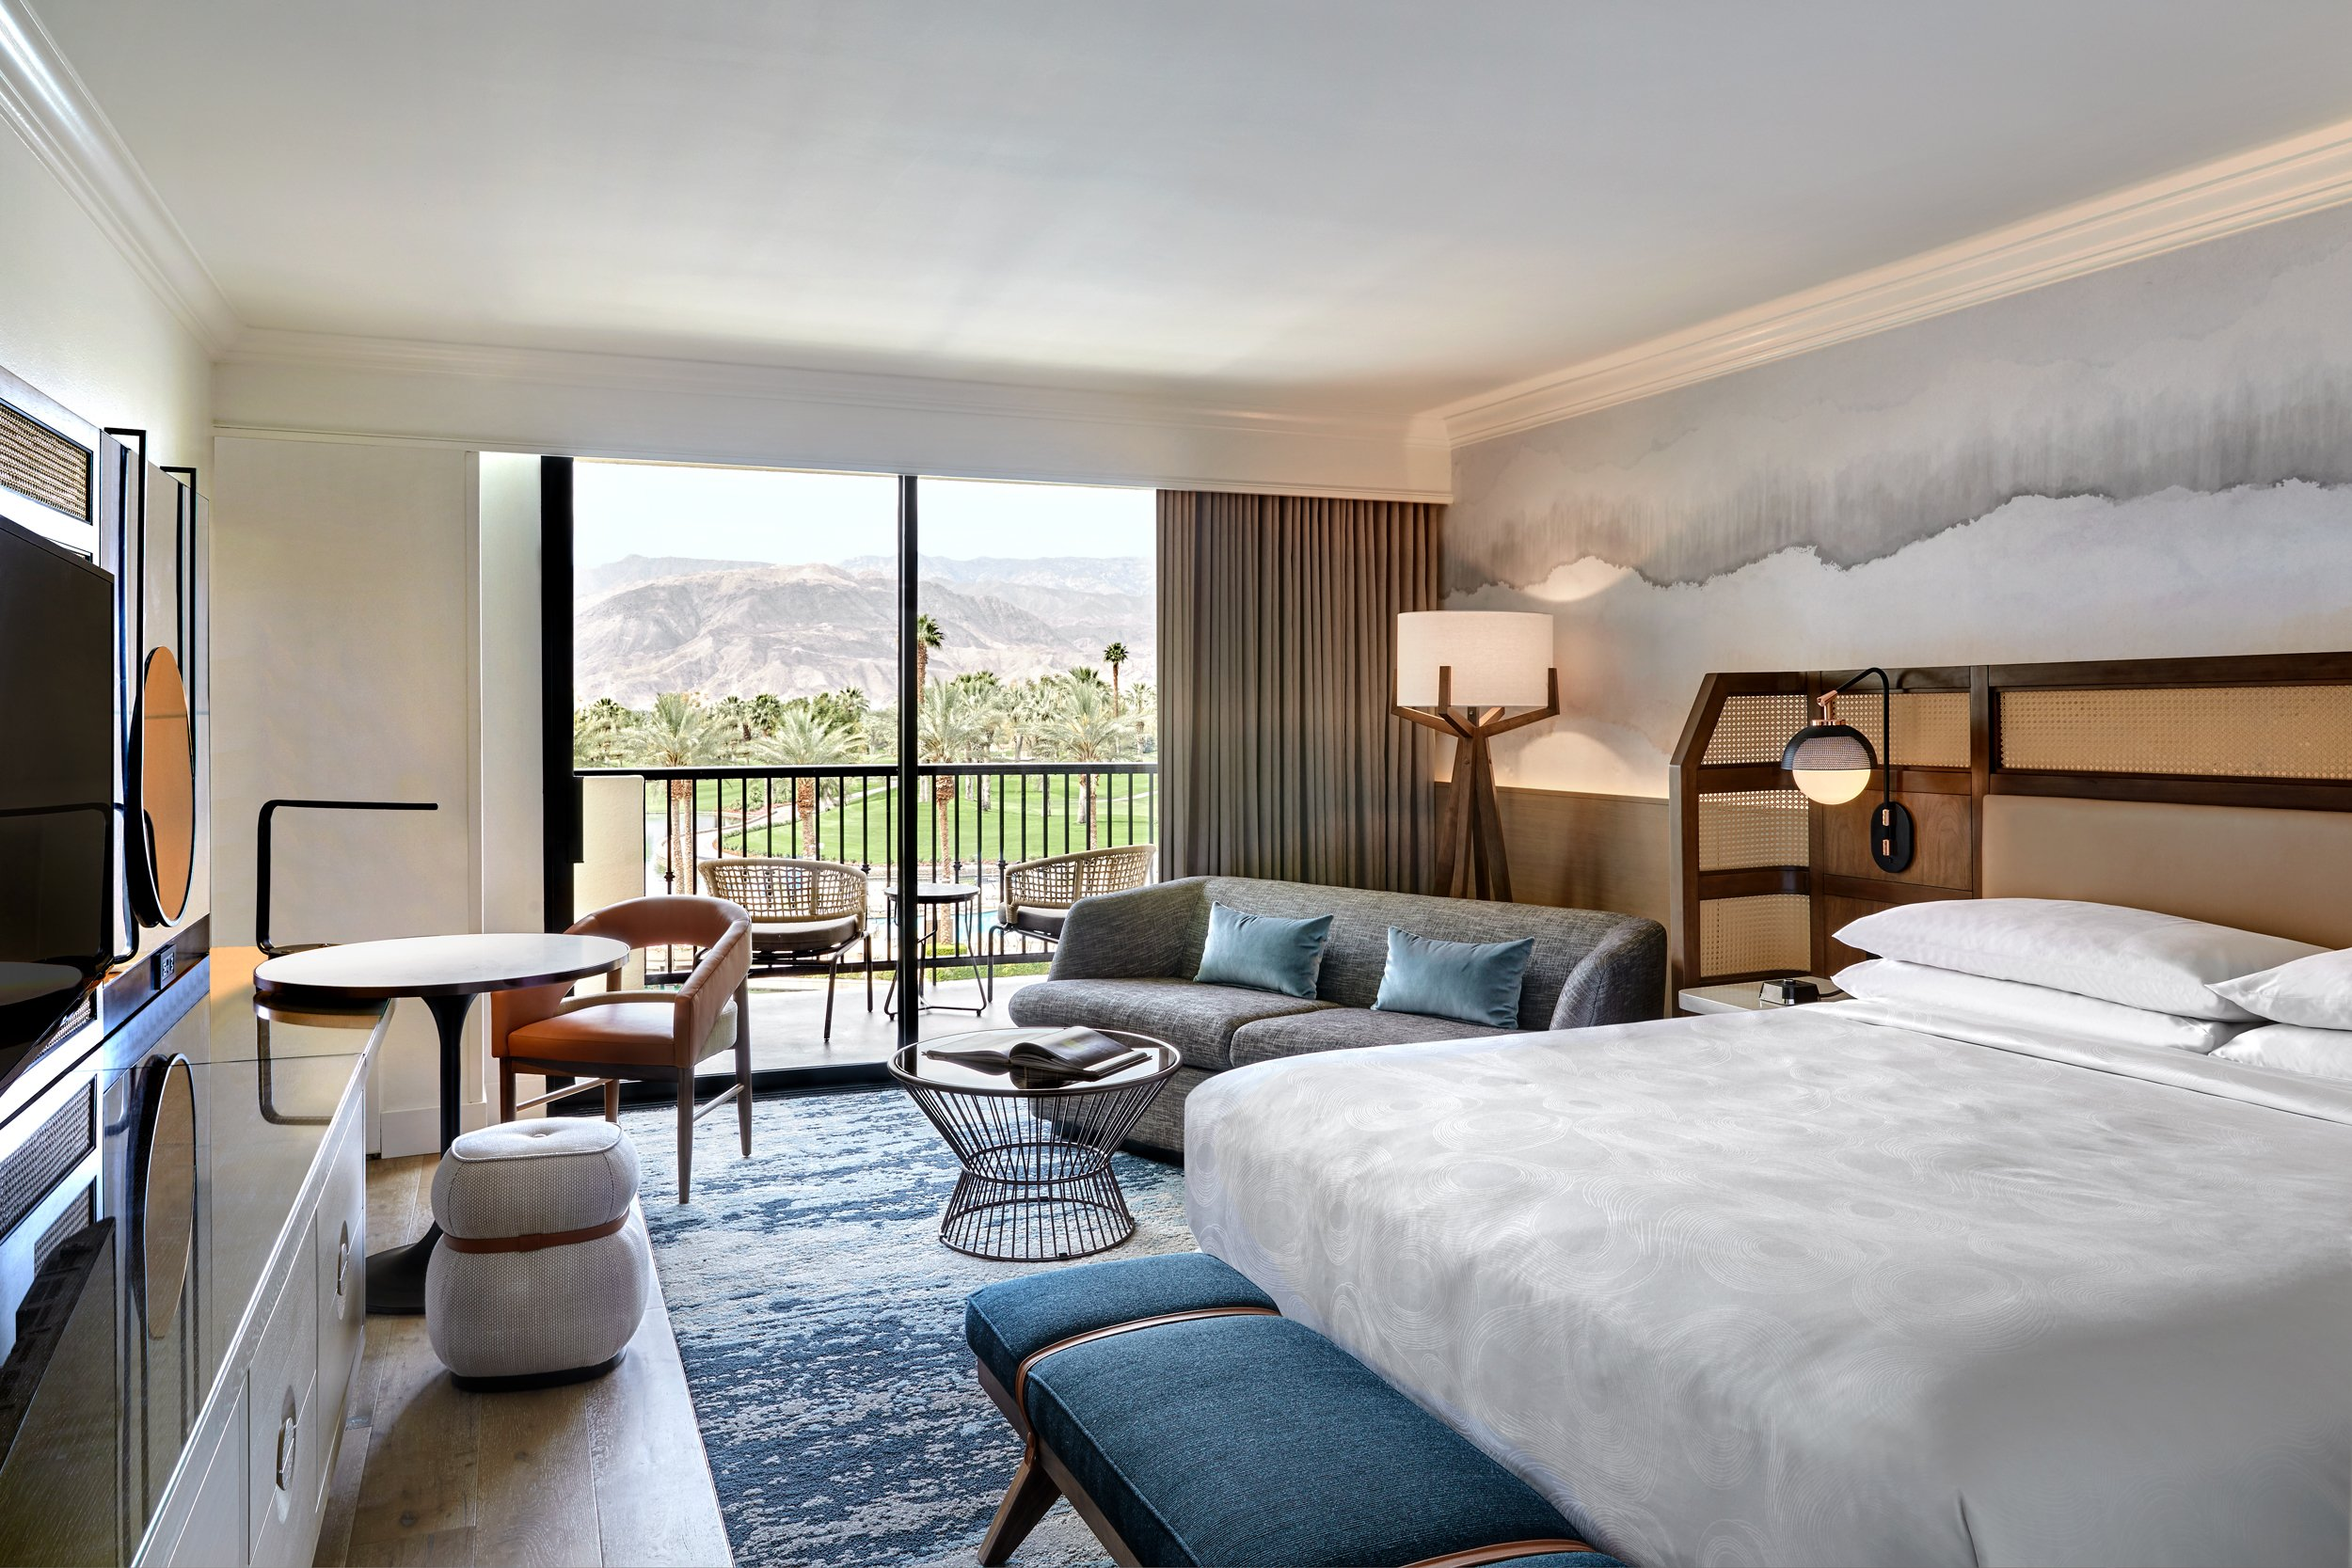 The guestrooms have updated hardwood floors, modern furnishings, bedding, and mountain-inspired silhouette murals.